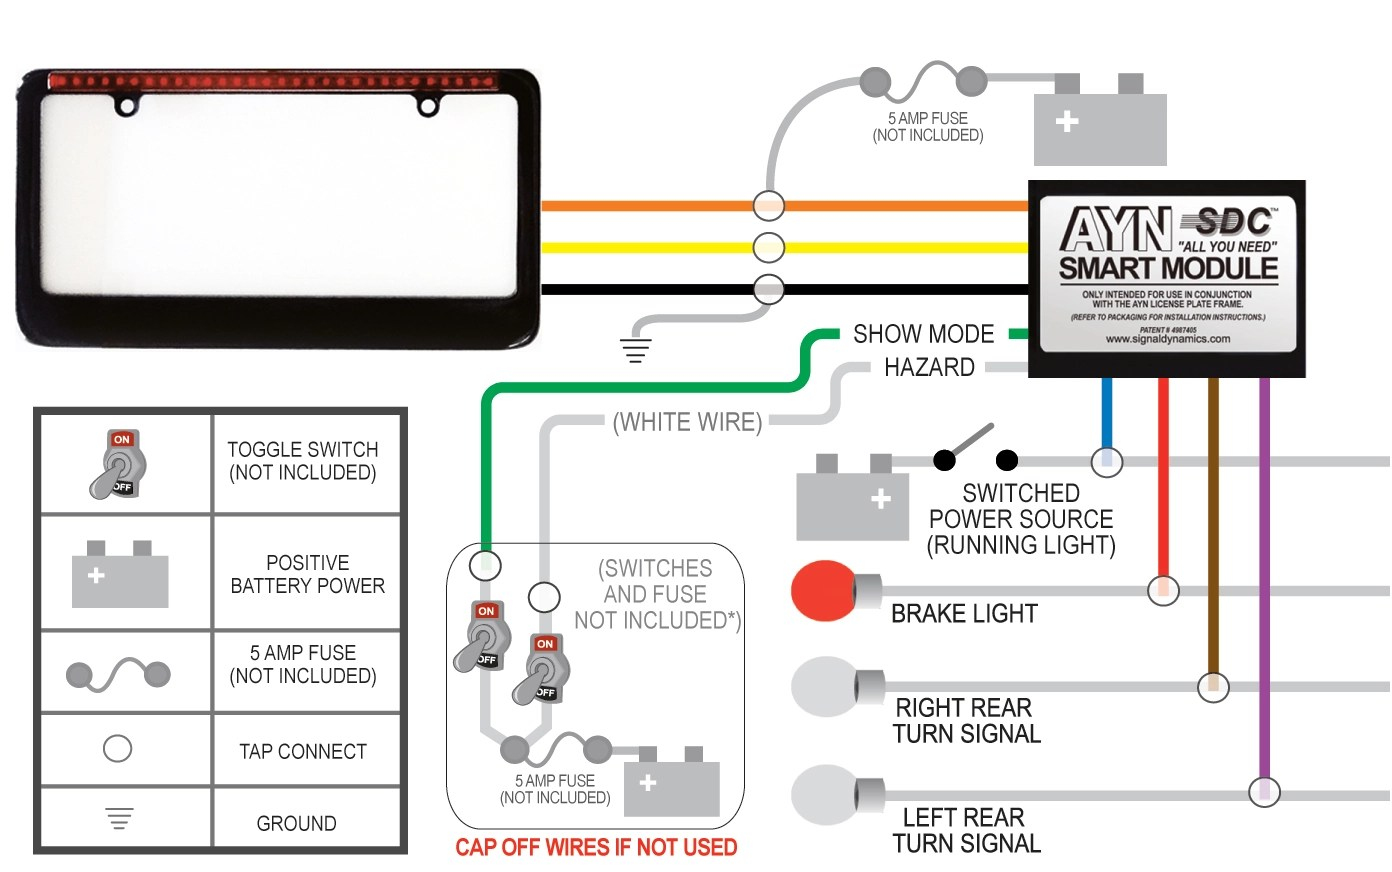 Stat Turn Signal Flasher Wiring Diagram Diagrams Universal 640 Grote Mustang Chevrolet